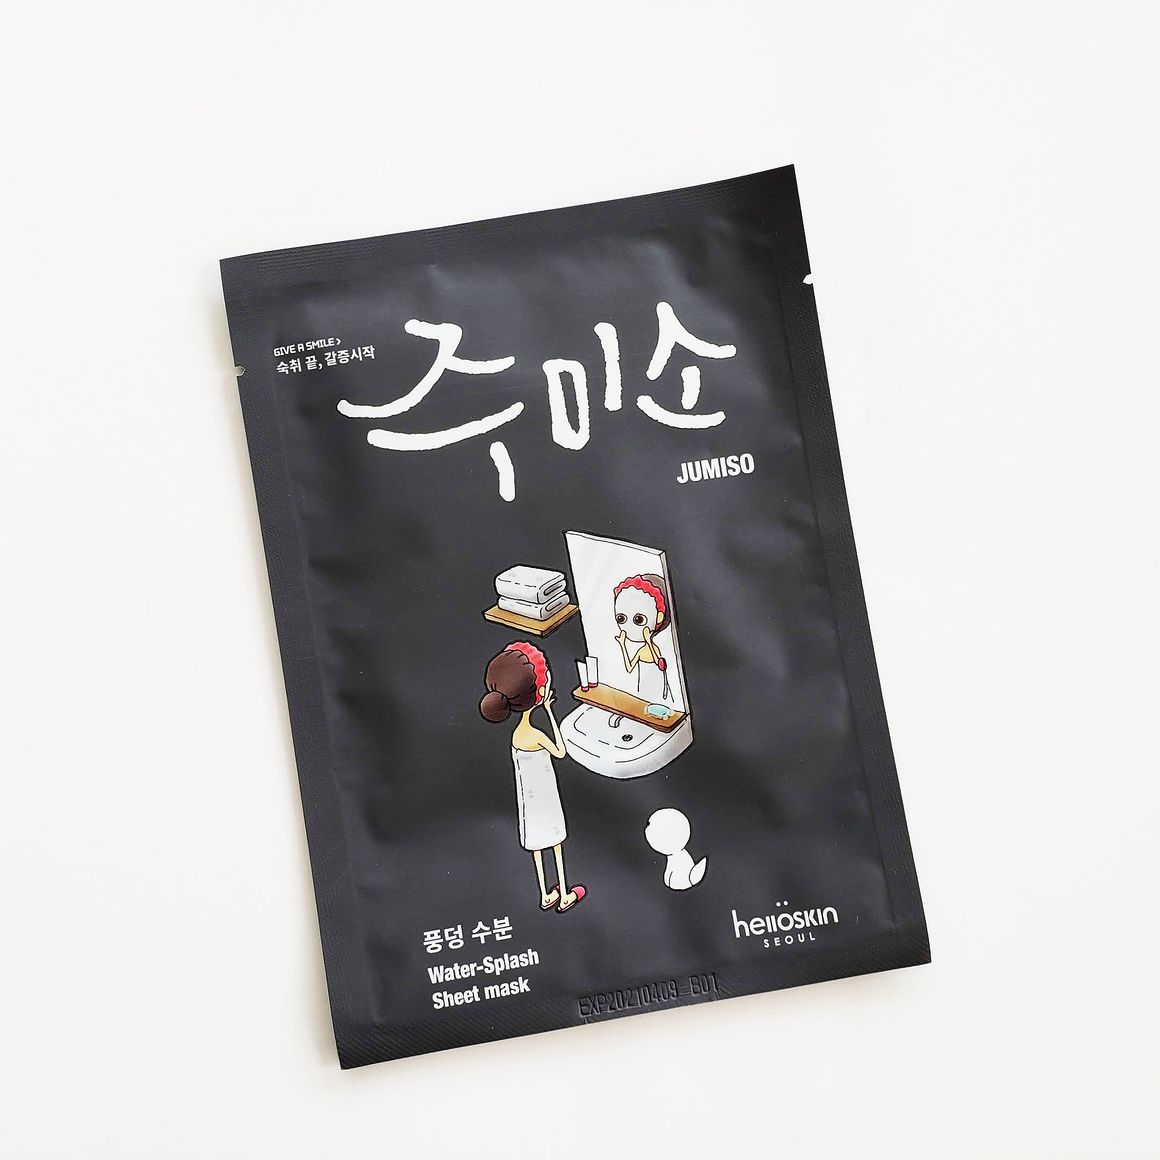 HELLOSKIN Jumiso Water Splash Mask [EXP 04.09.2021]